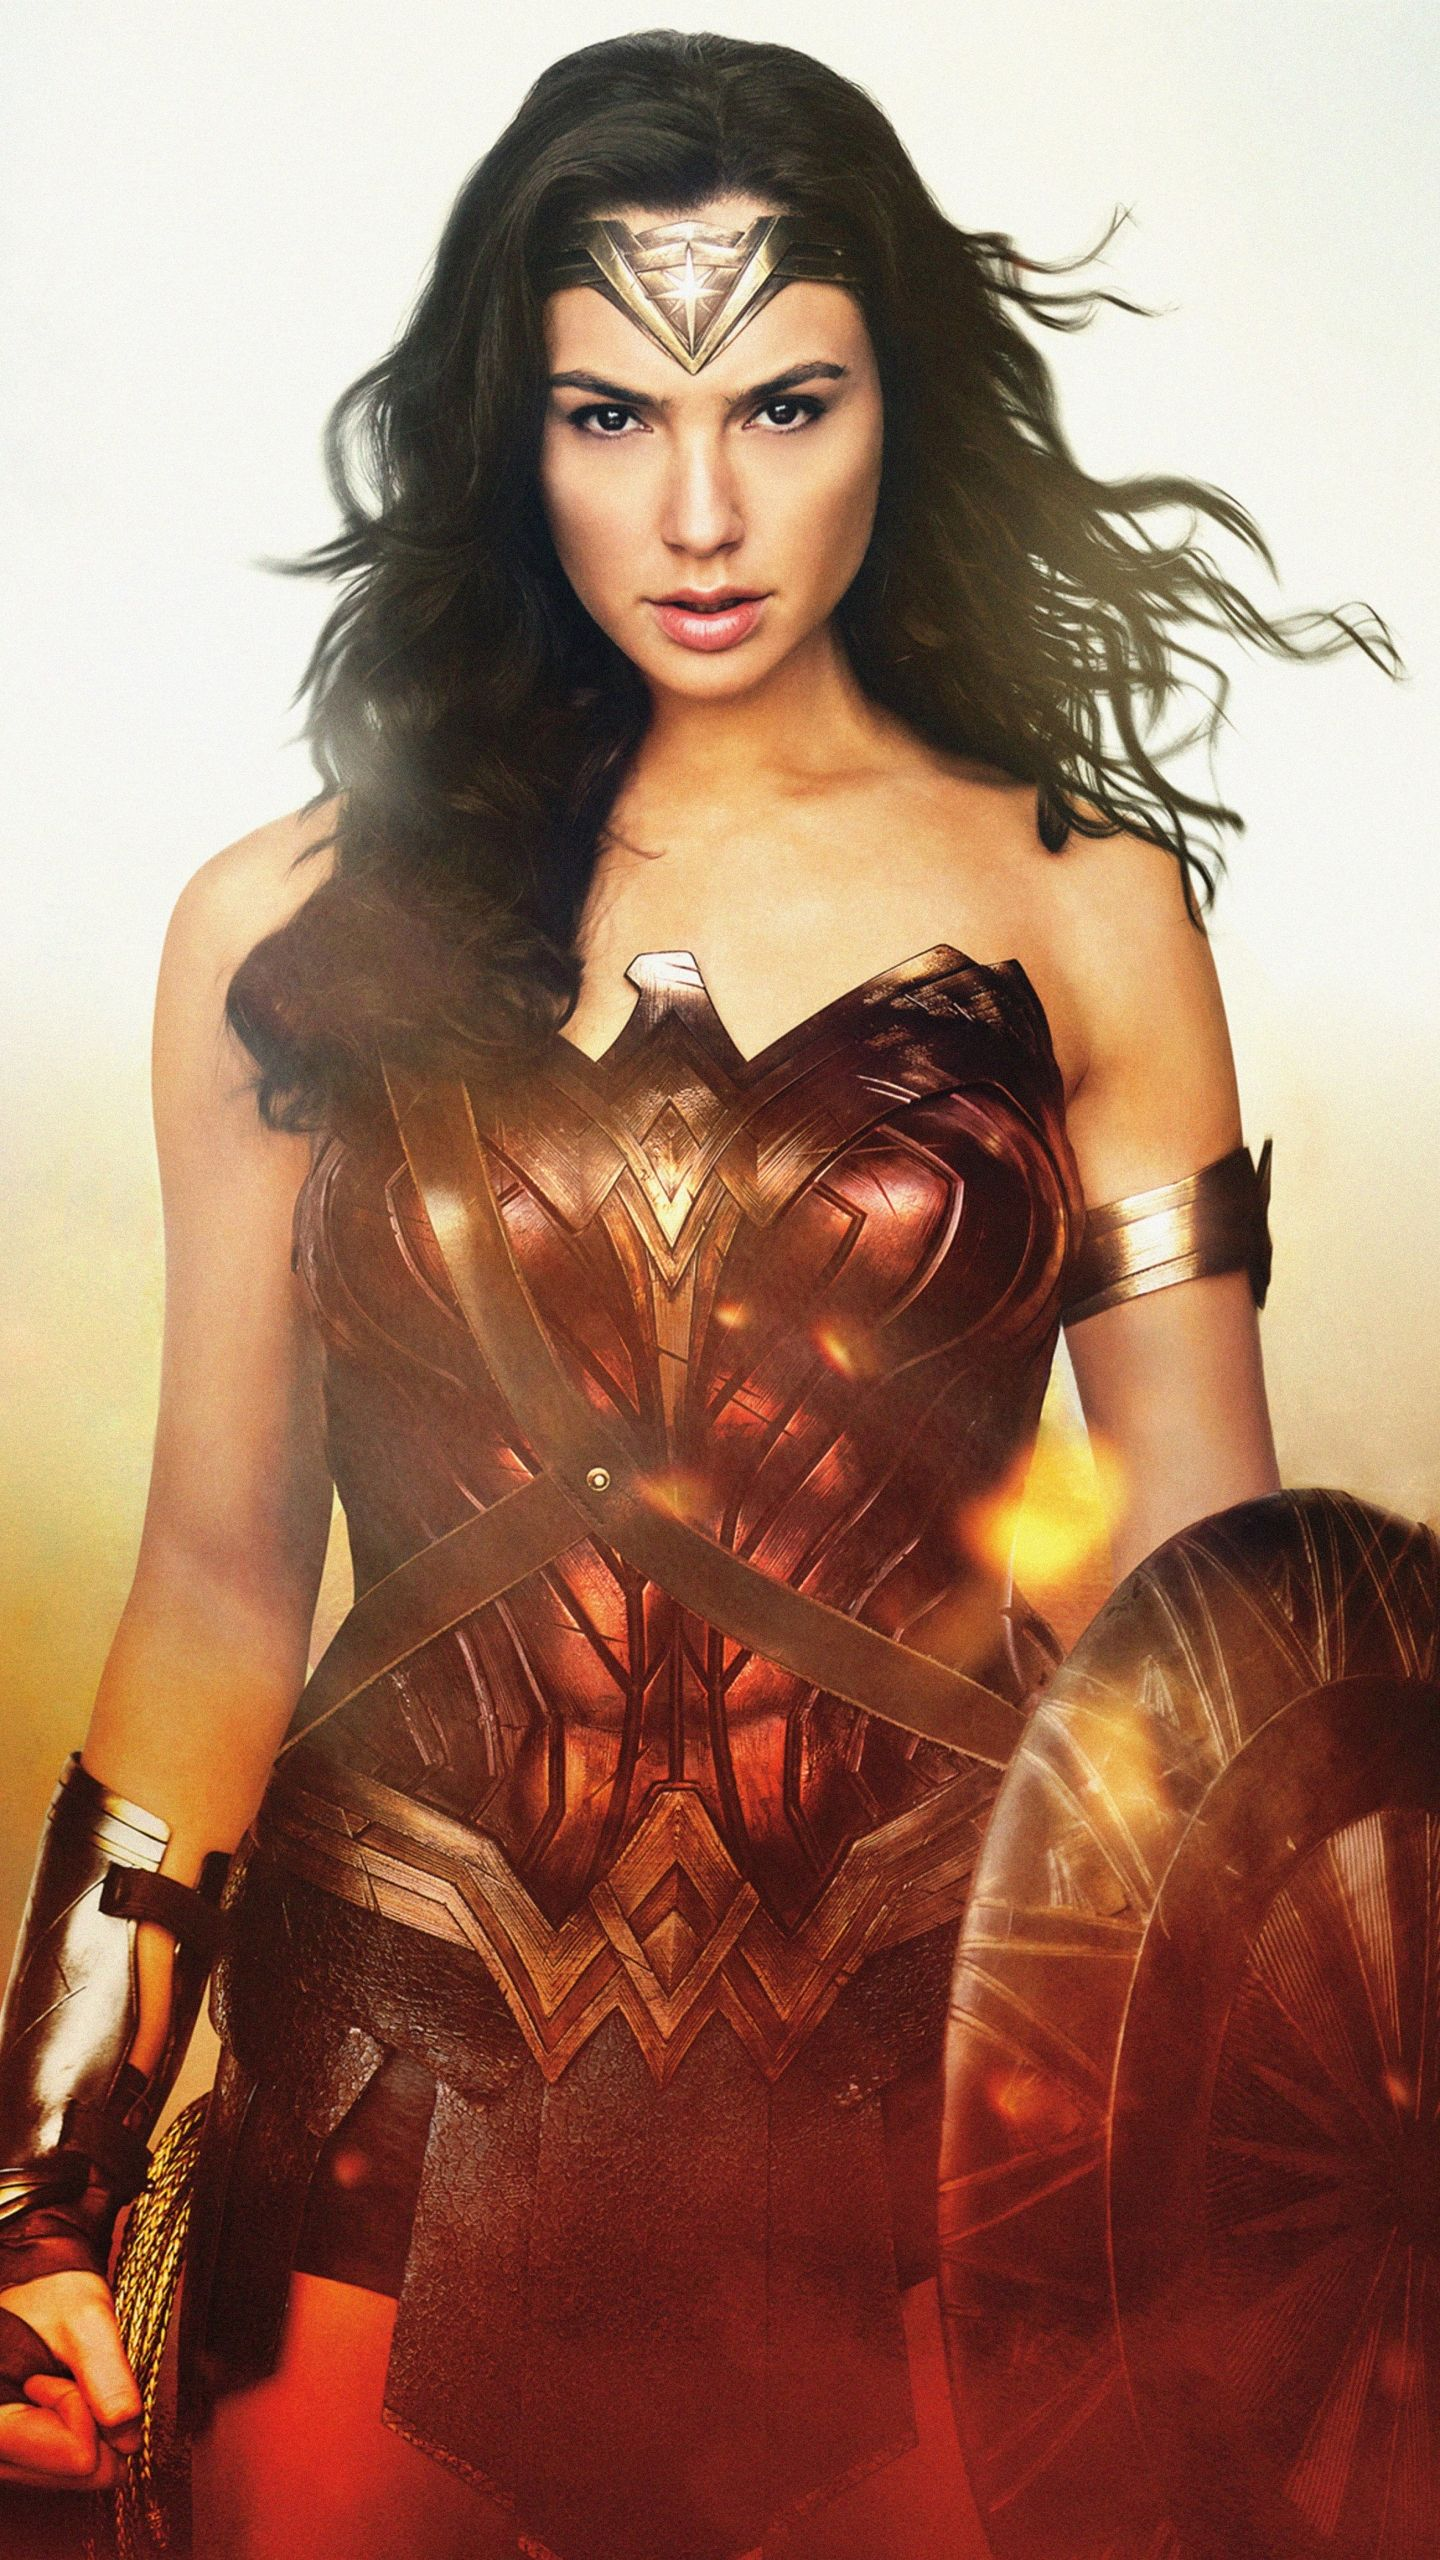 Wonder Woman Phone Wallpapers Top Free Wonder Woman Phone